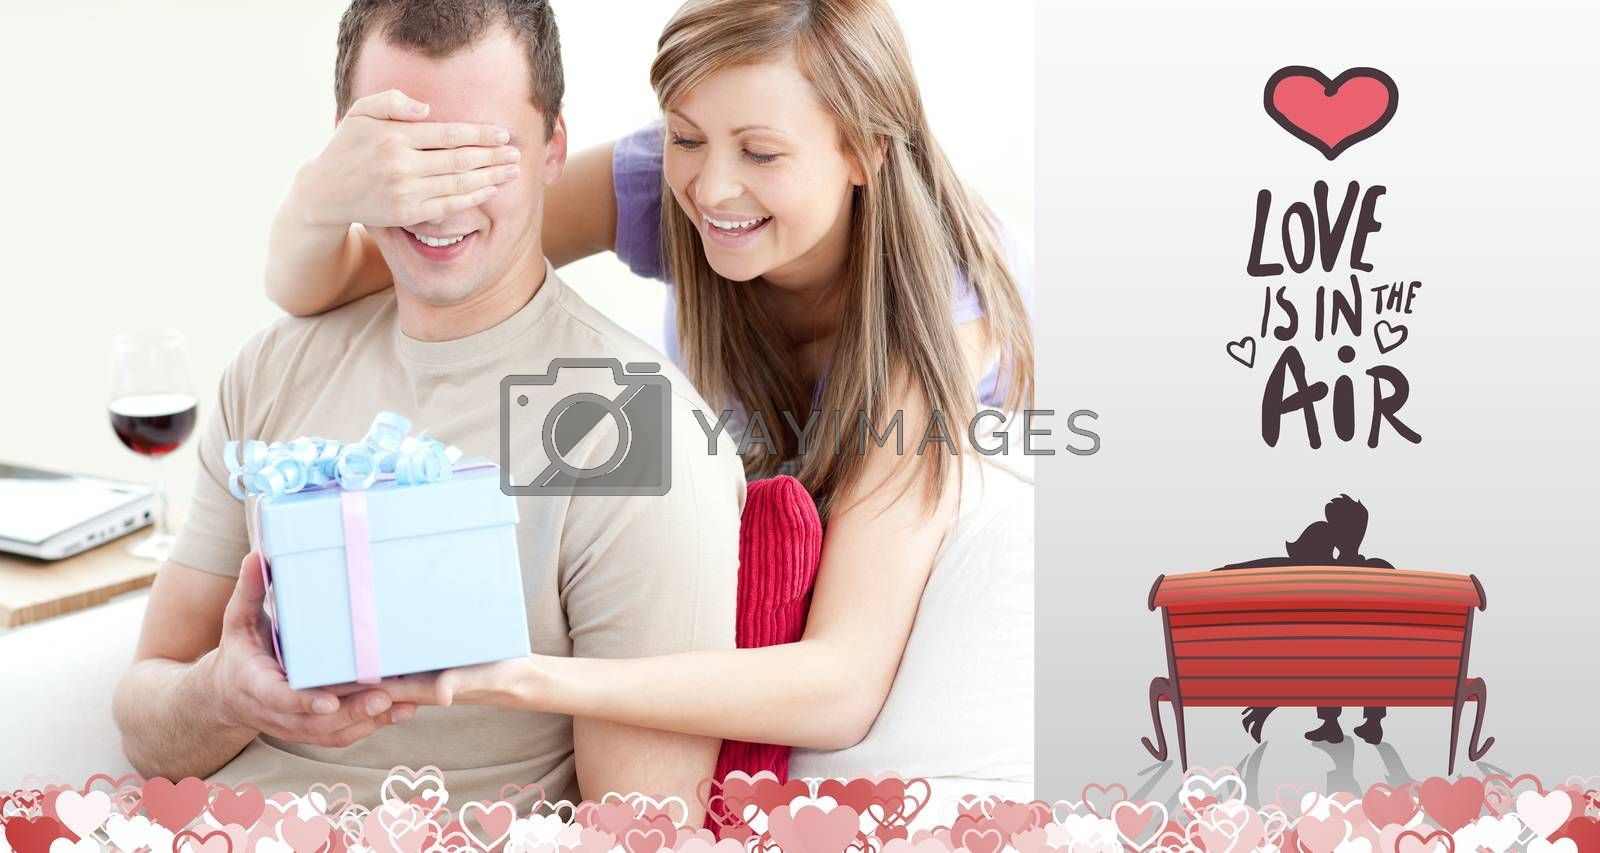 Smiling woman giving a present to her boyfriend against love is in the air